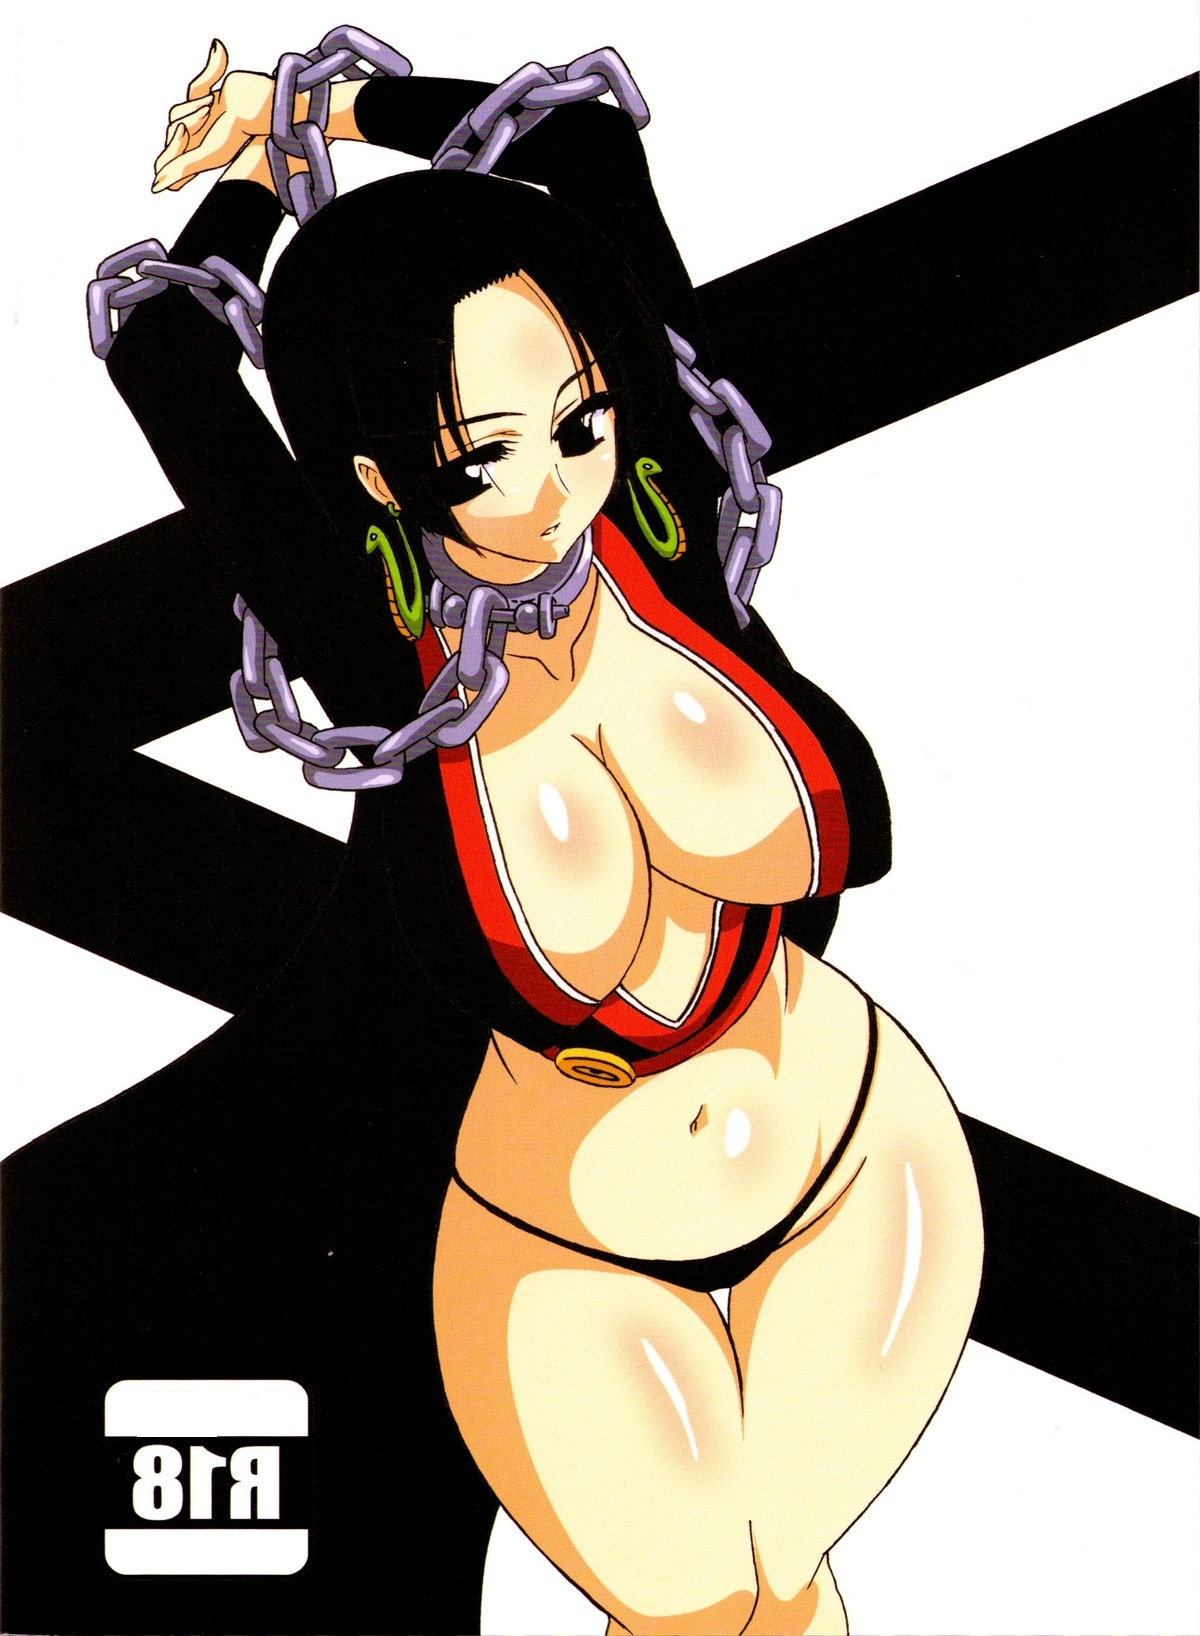 Toon sex pic ##00013062046 arms up bb black panties boa hancock breasts chains chains cleavage collar highres large breasts no bra one piece panties underwear